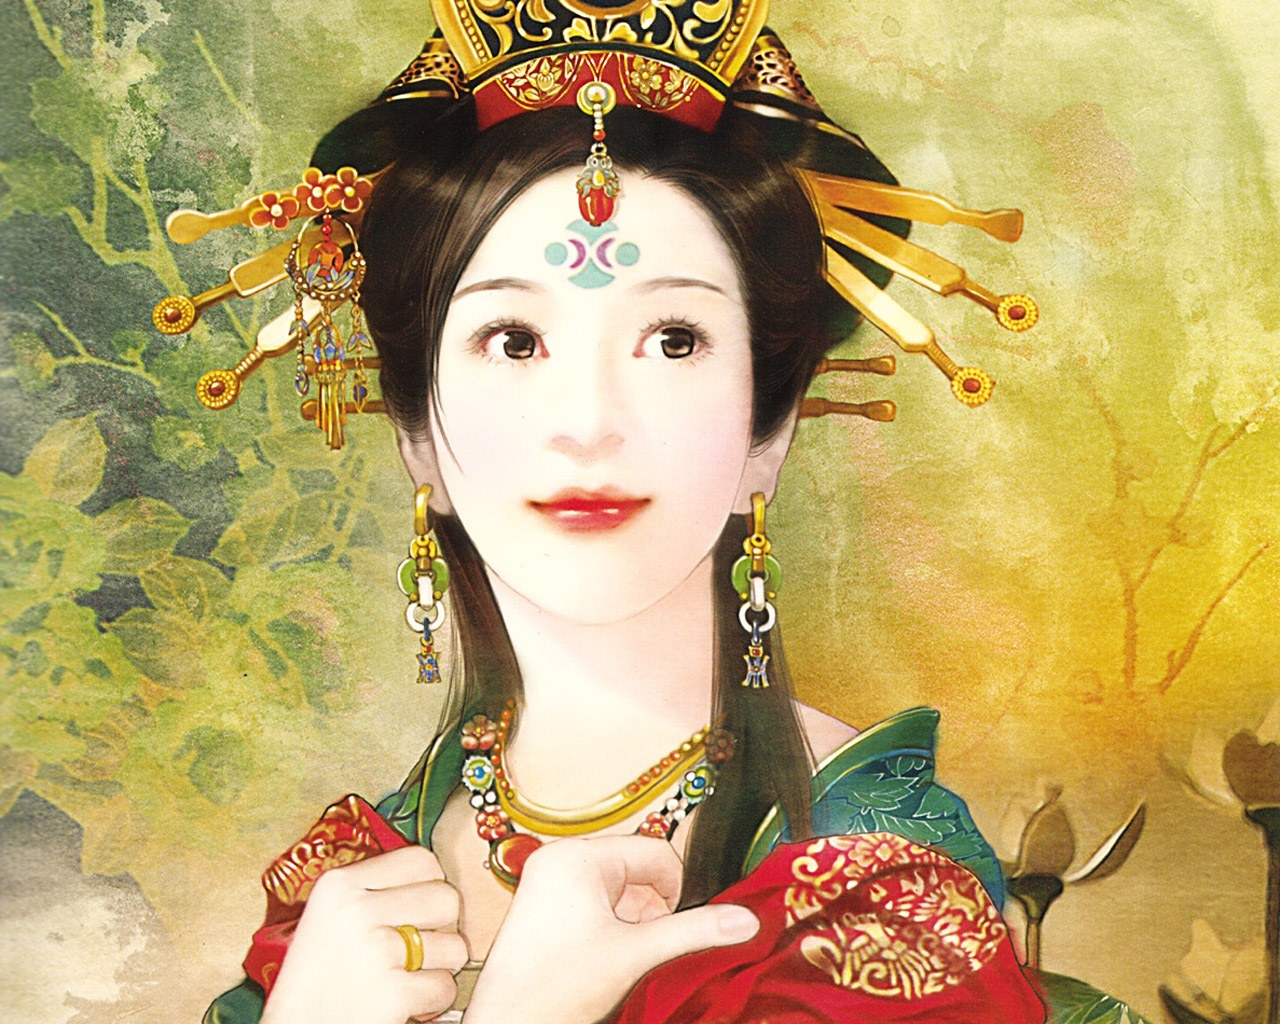 High Resolution Wallpaper | The Ancient Chinese Beauty 1280x1024 px